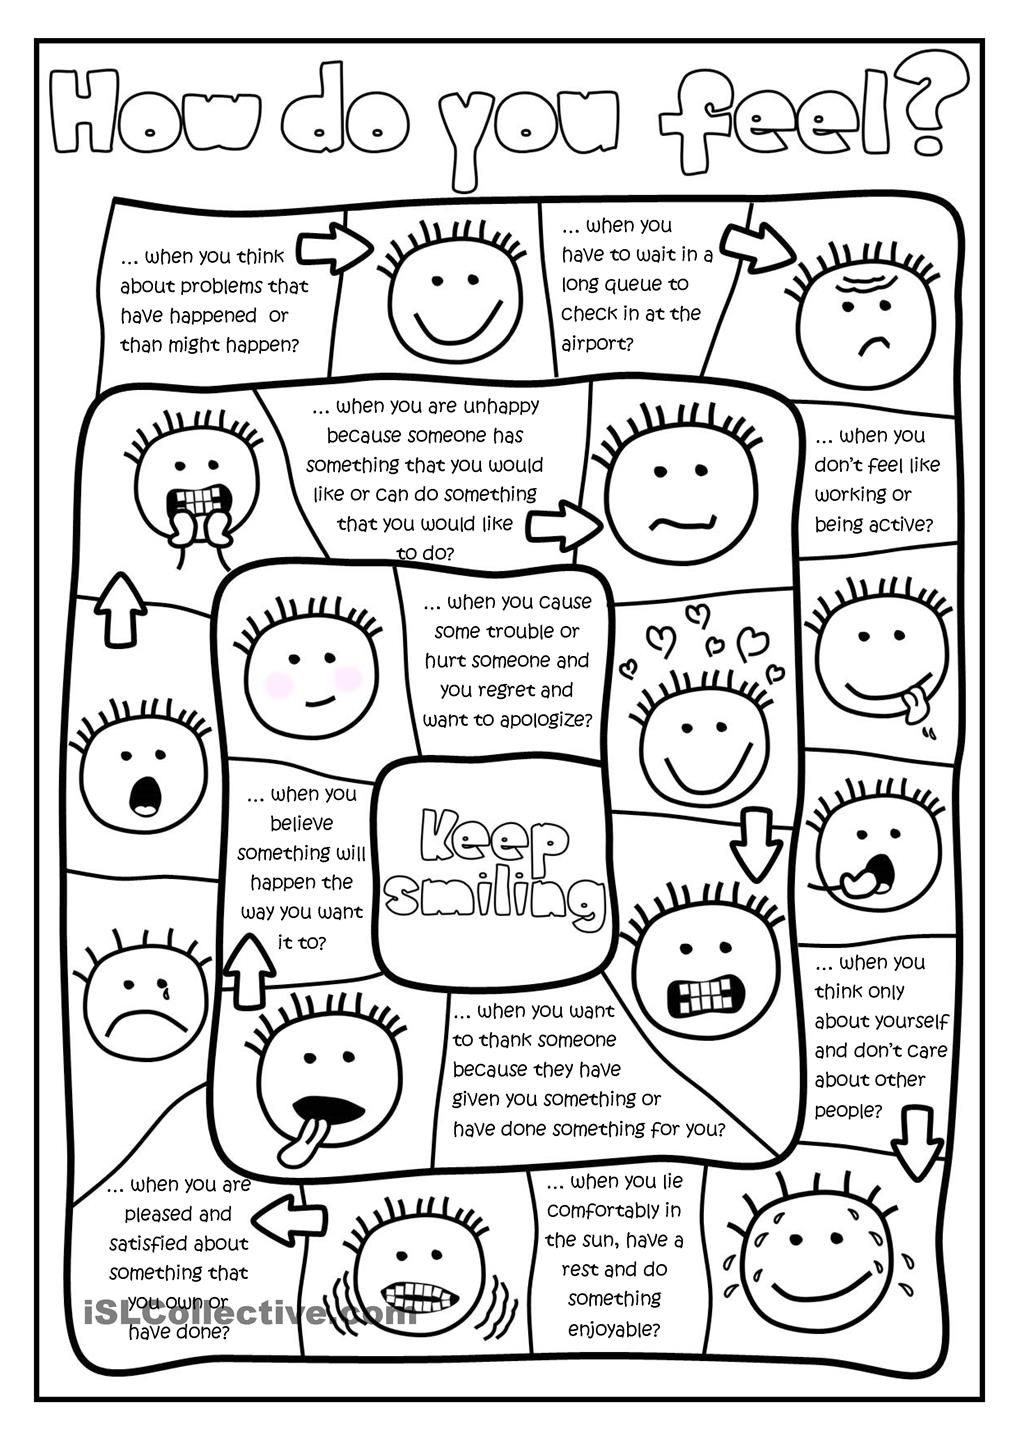 Workbooks wishes and feelings worksheets for children : How do you feel? - board game worksheet - Free ESL printable ...